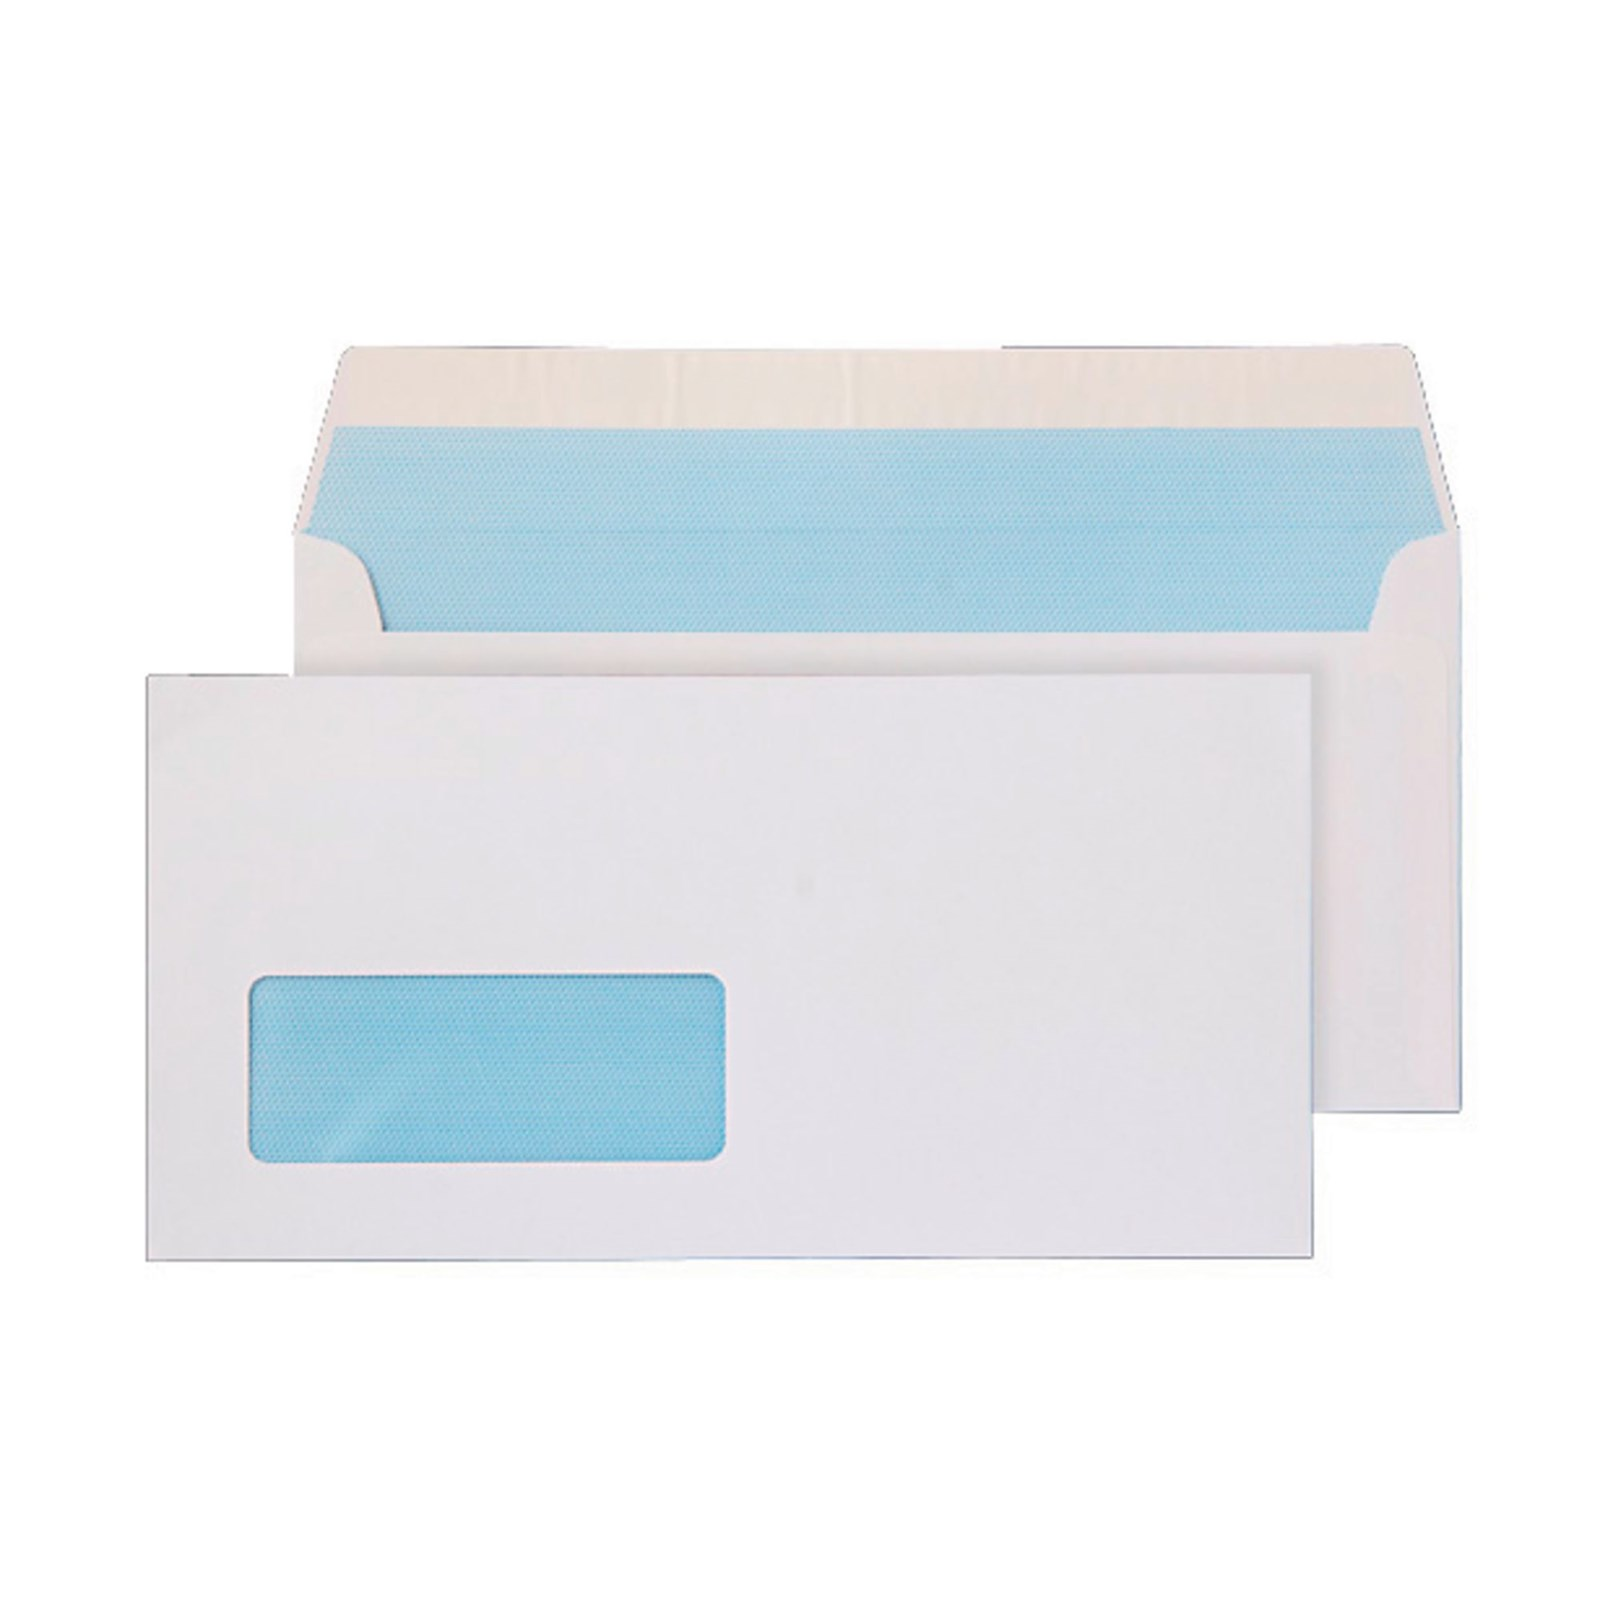 DL White Peel and Seal Wallet Envelopes - Box of 500